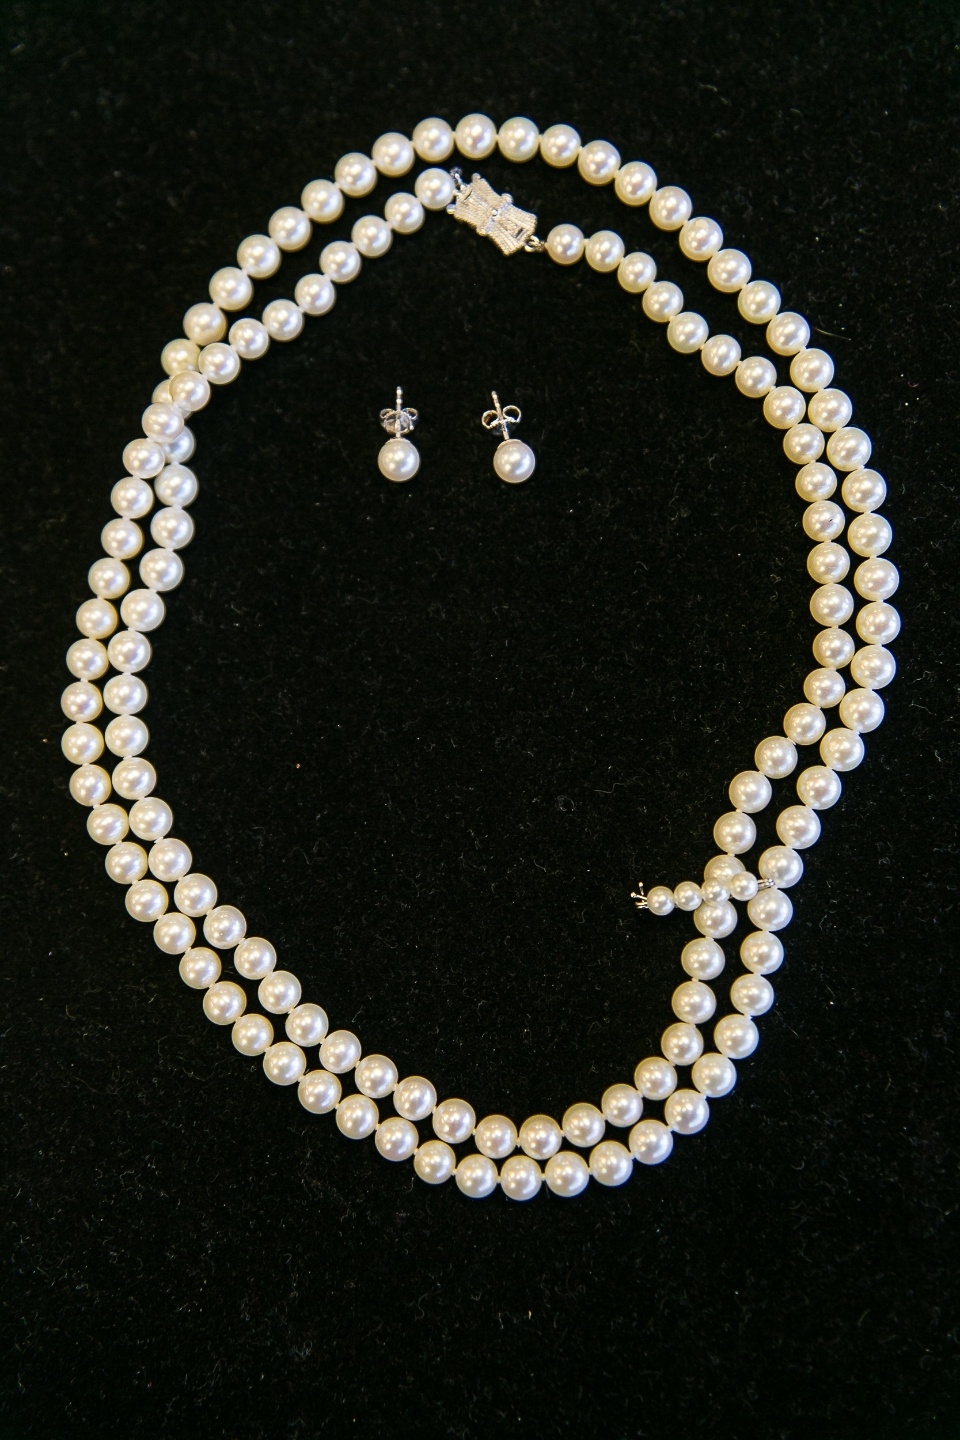 Mikmoto Pearls   30-inch double strand of Mikimoto pearls with a 14-karat white gold clasp.    Bonus in this purchase is a pair of 6.5-7.0 mm high quality pearl stud earrings.   Suggested retail is $1695.00   SOLD!